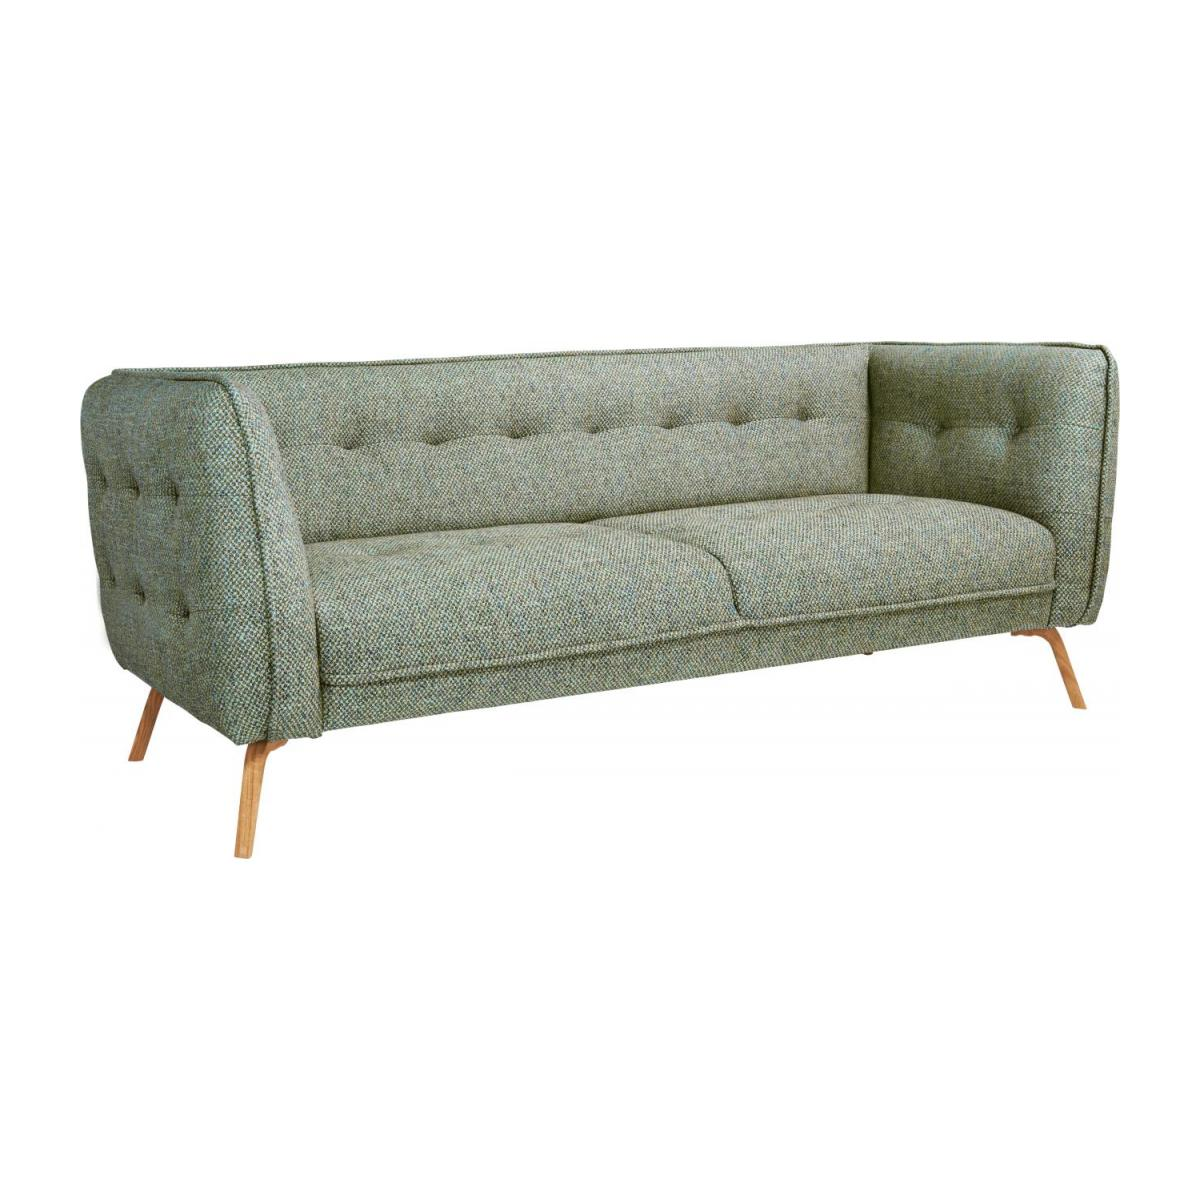 3 seater sofa in Bellagio fabric, organic green and oak legs n°1